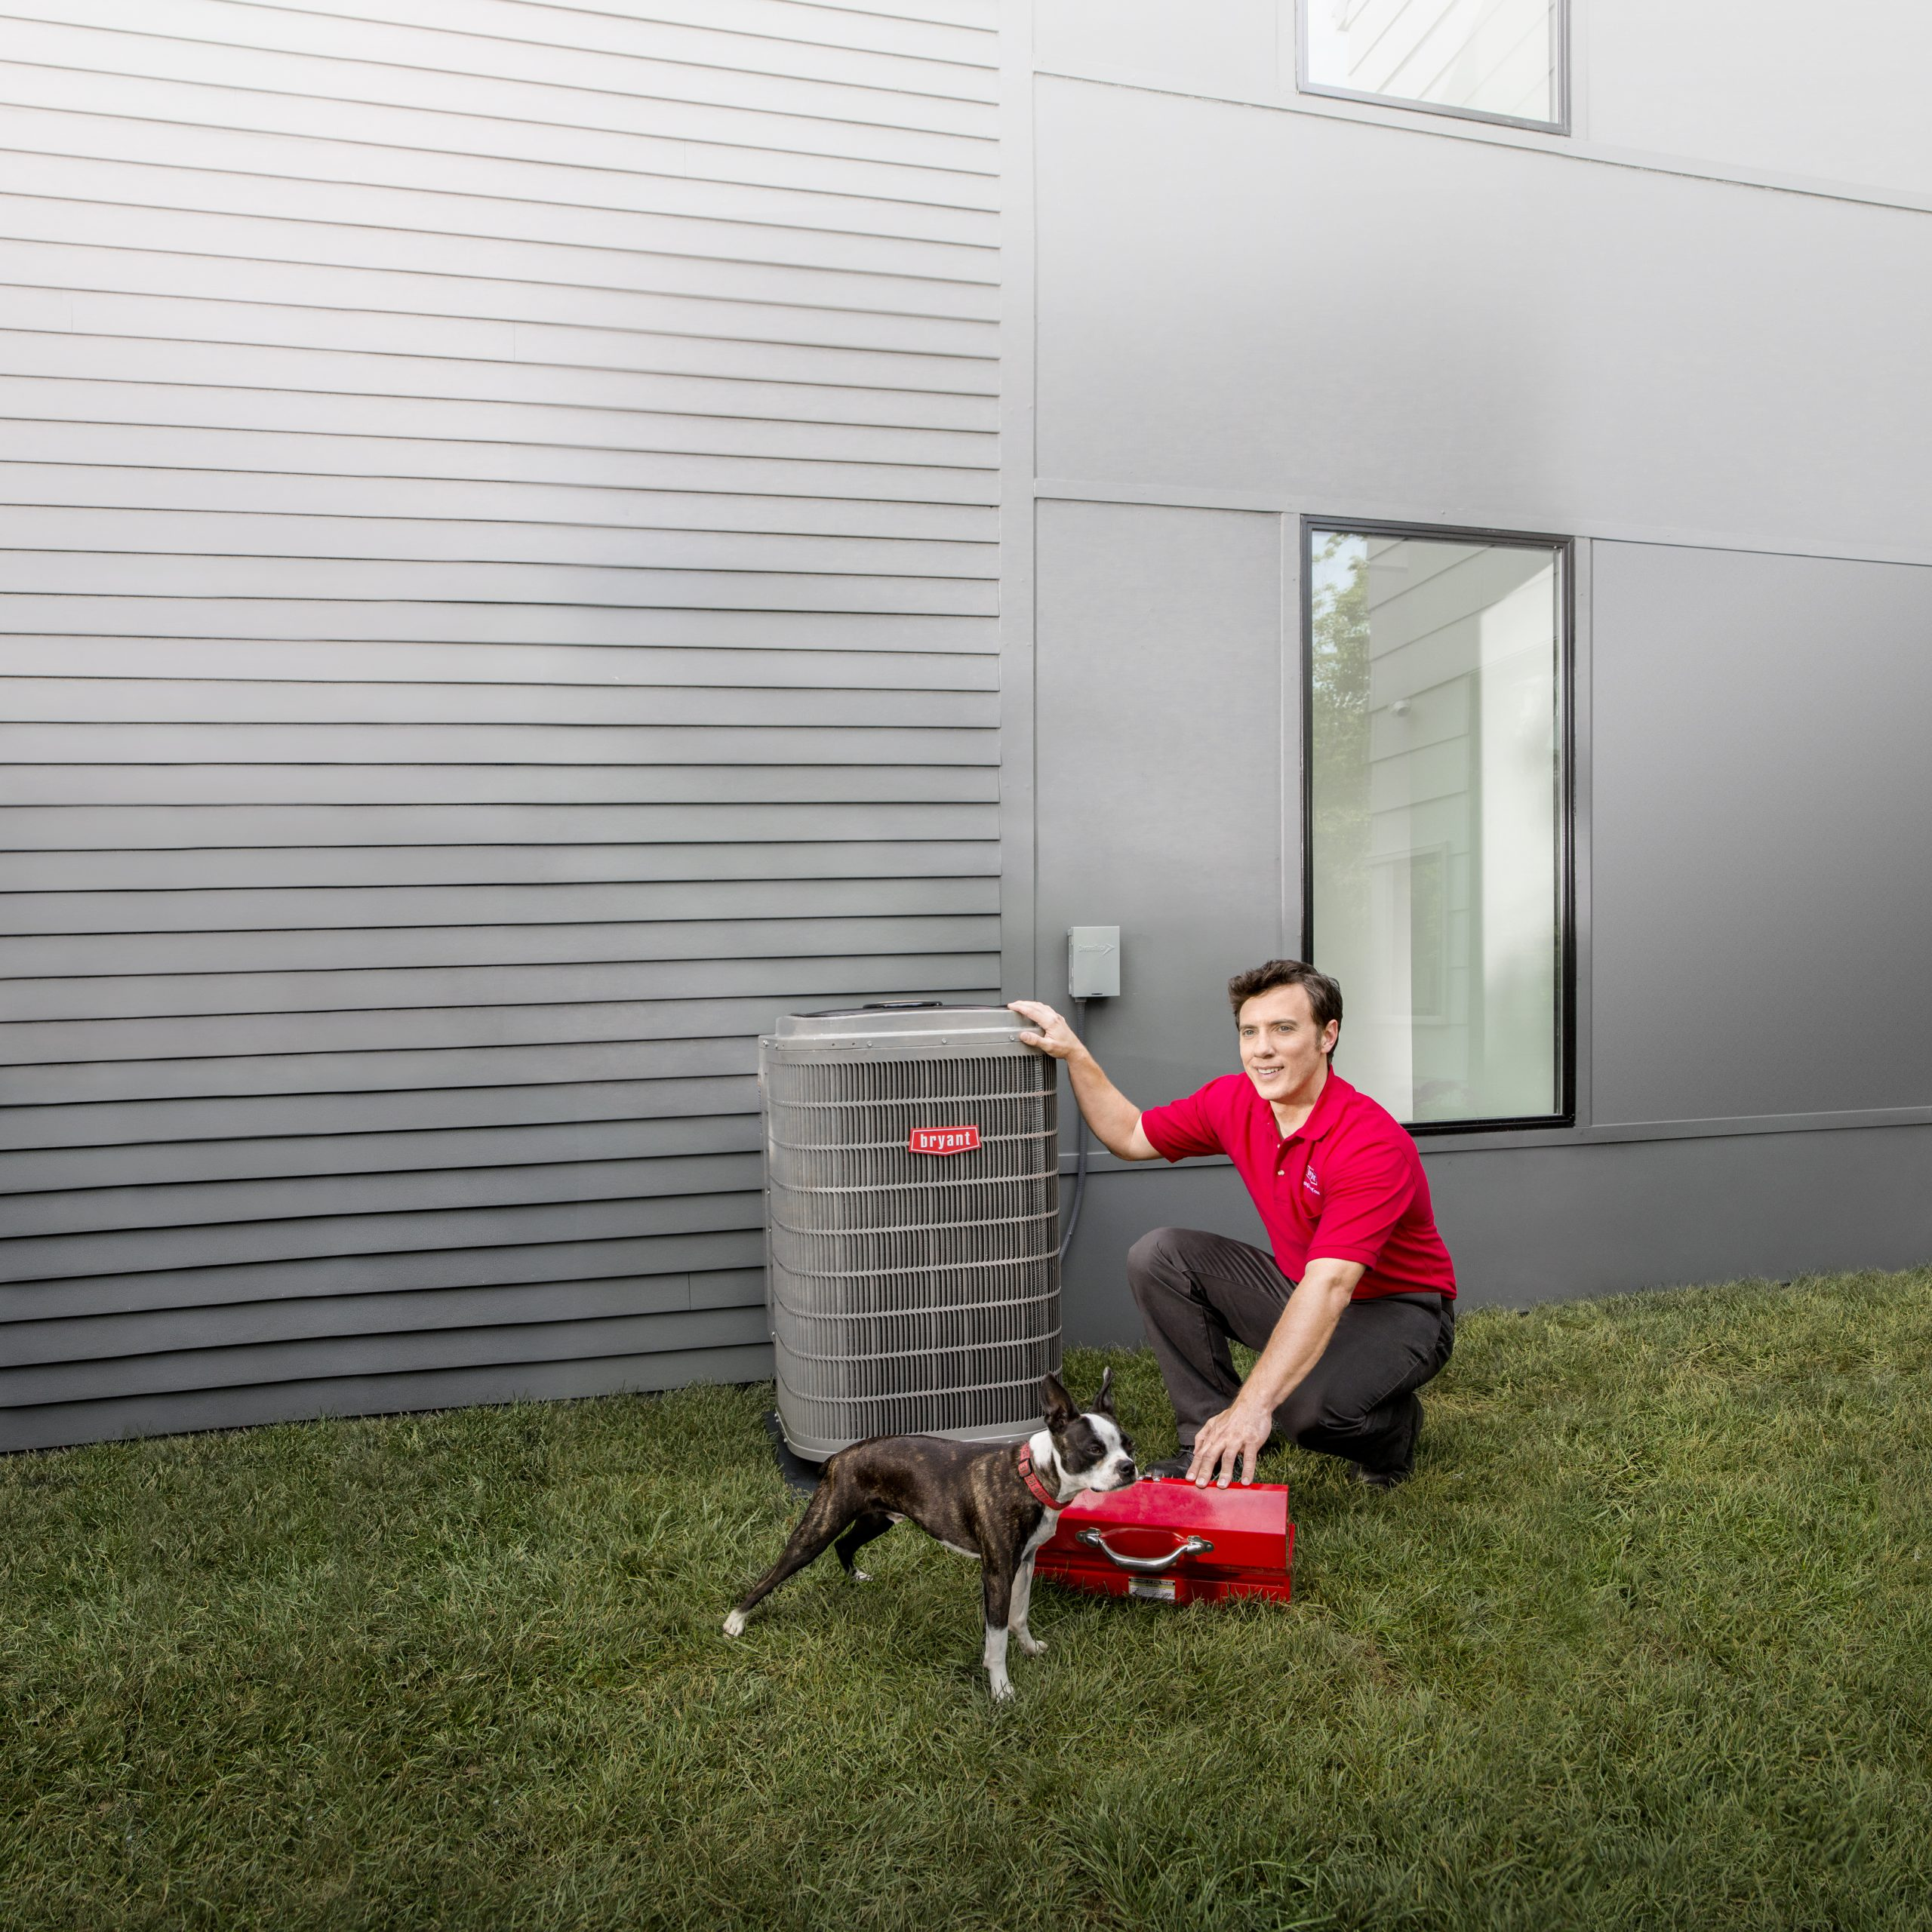 Heating and Air Conditioning Contractor in San Carlos, CA